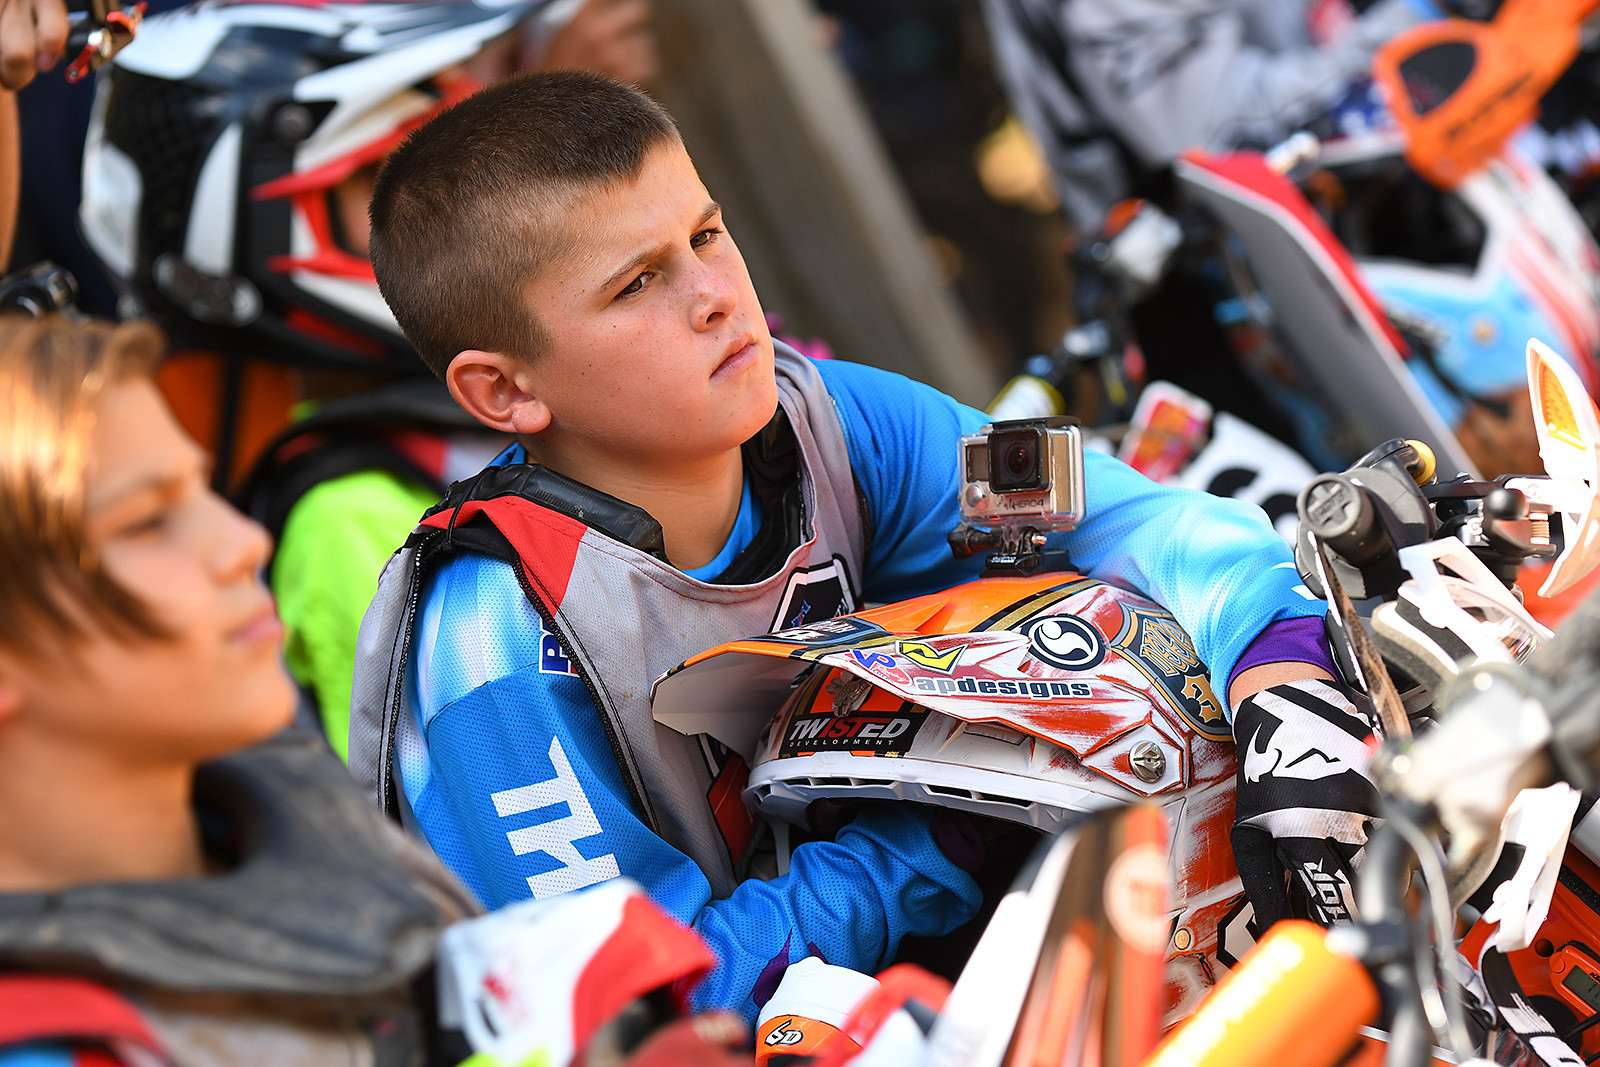 Haiden Deegan had a tough day. He challenged Daxton Bennick but then was penalized a position. Dangerboy is still even with this friend and teammate Bennick in the other 65 class, with 2-1 / 1-2 scores.